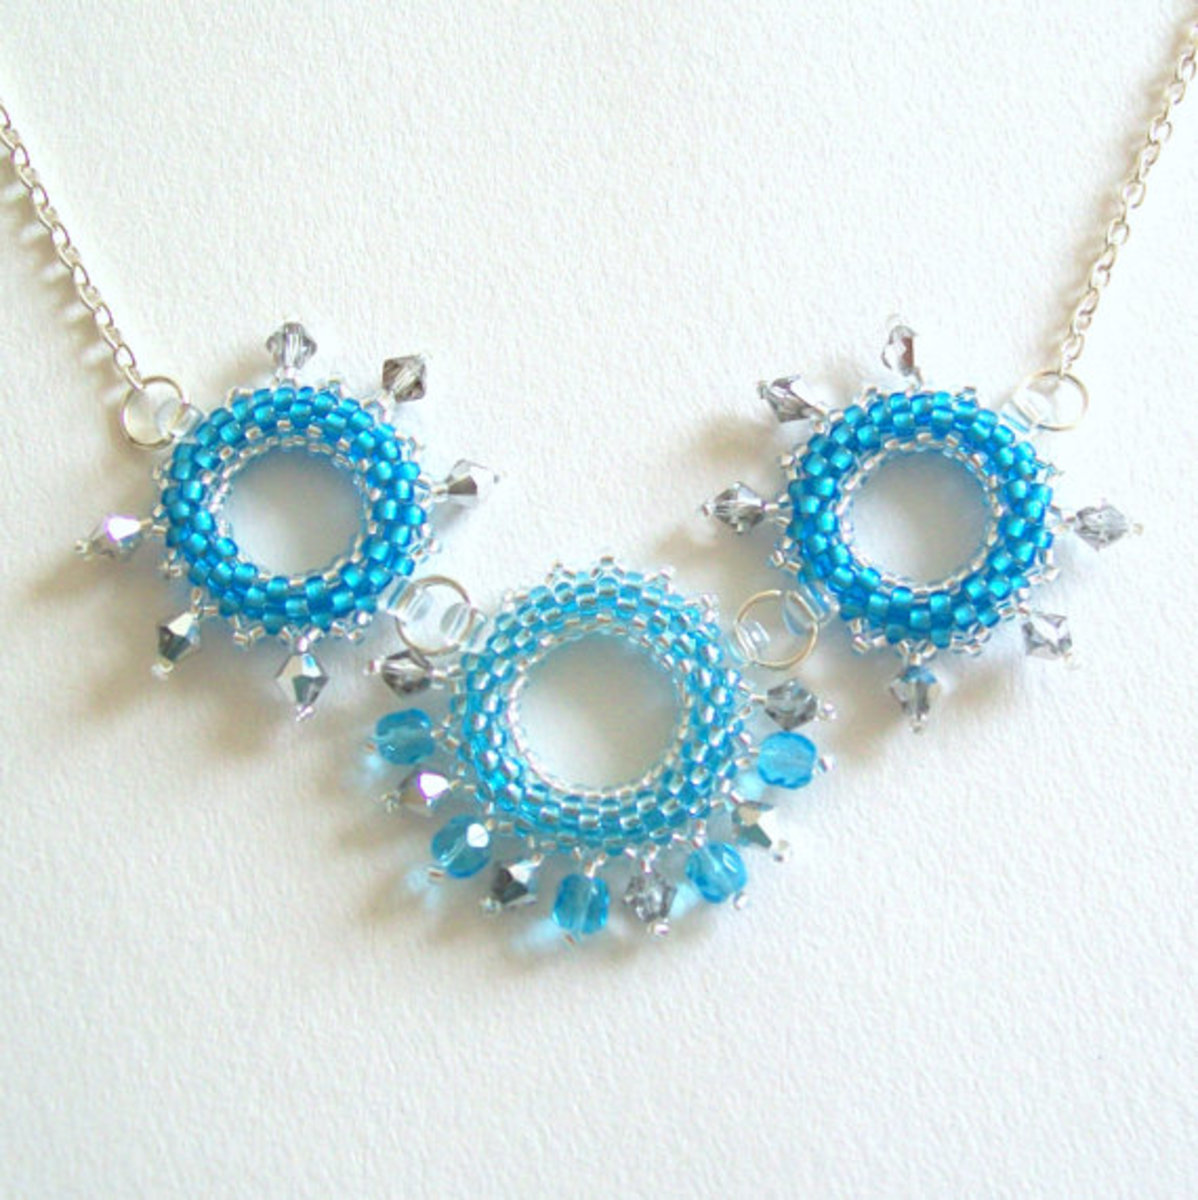 Use wire components to linked beaded rings for bracelets or necklaces.